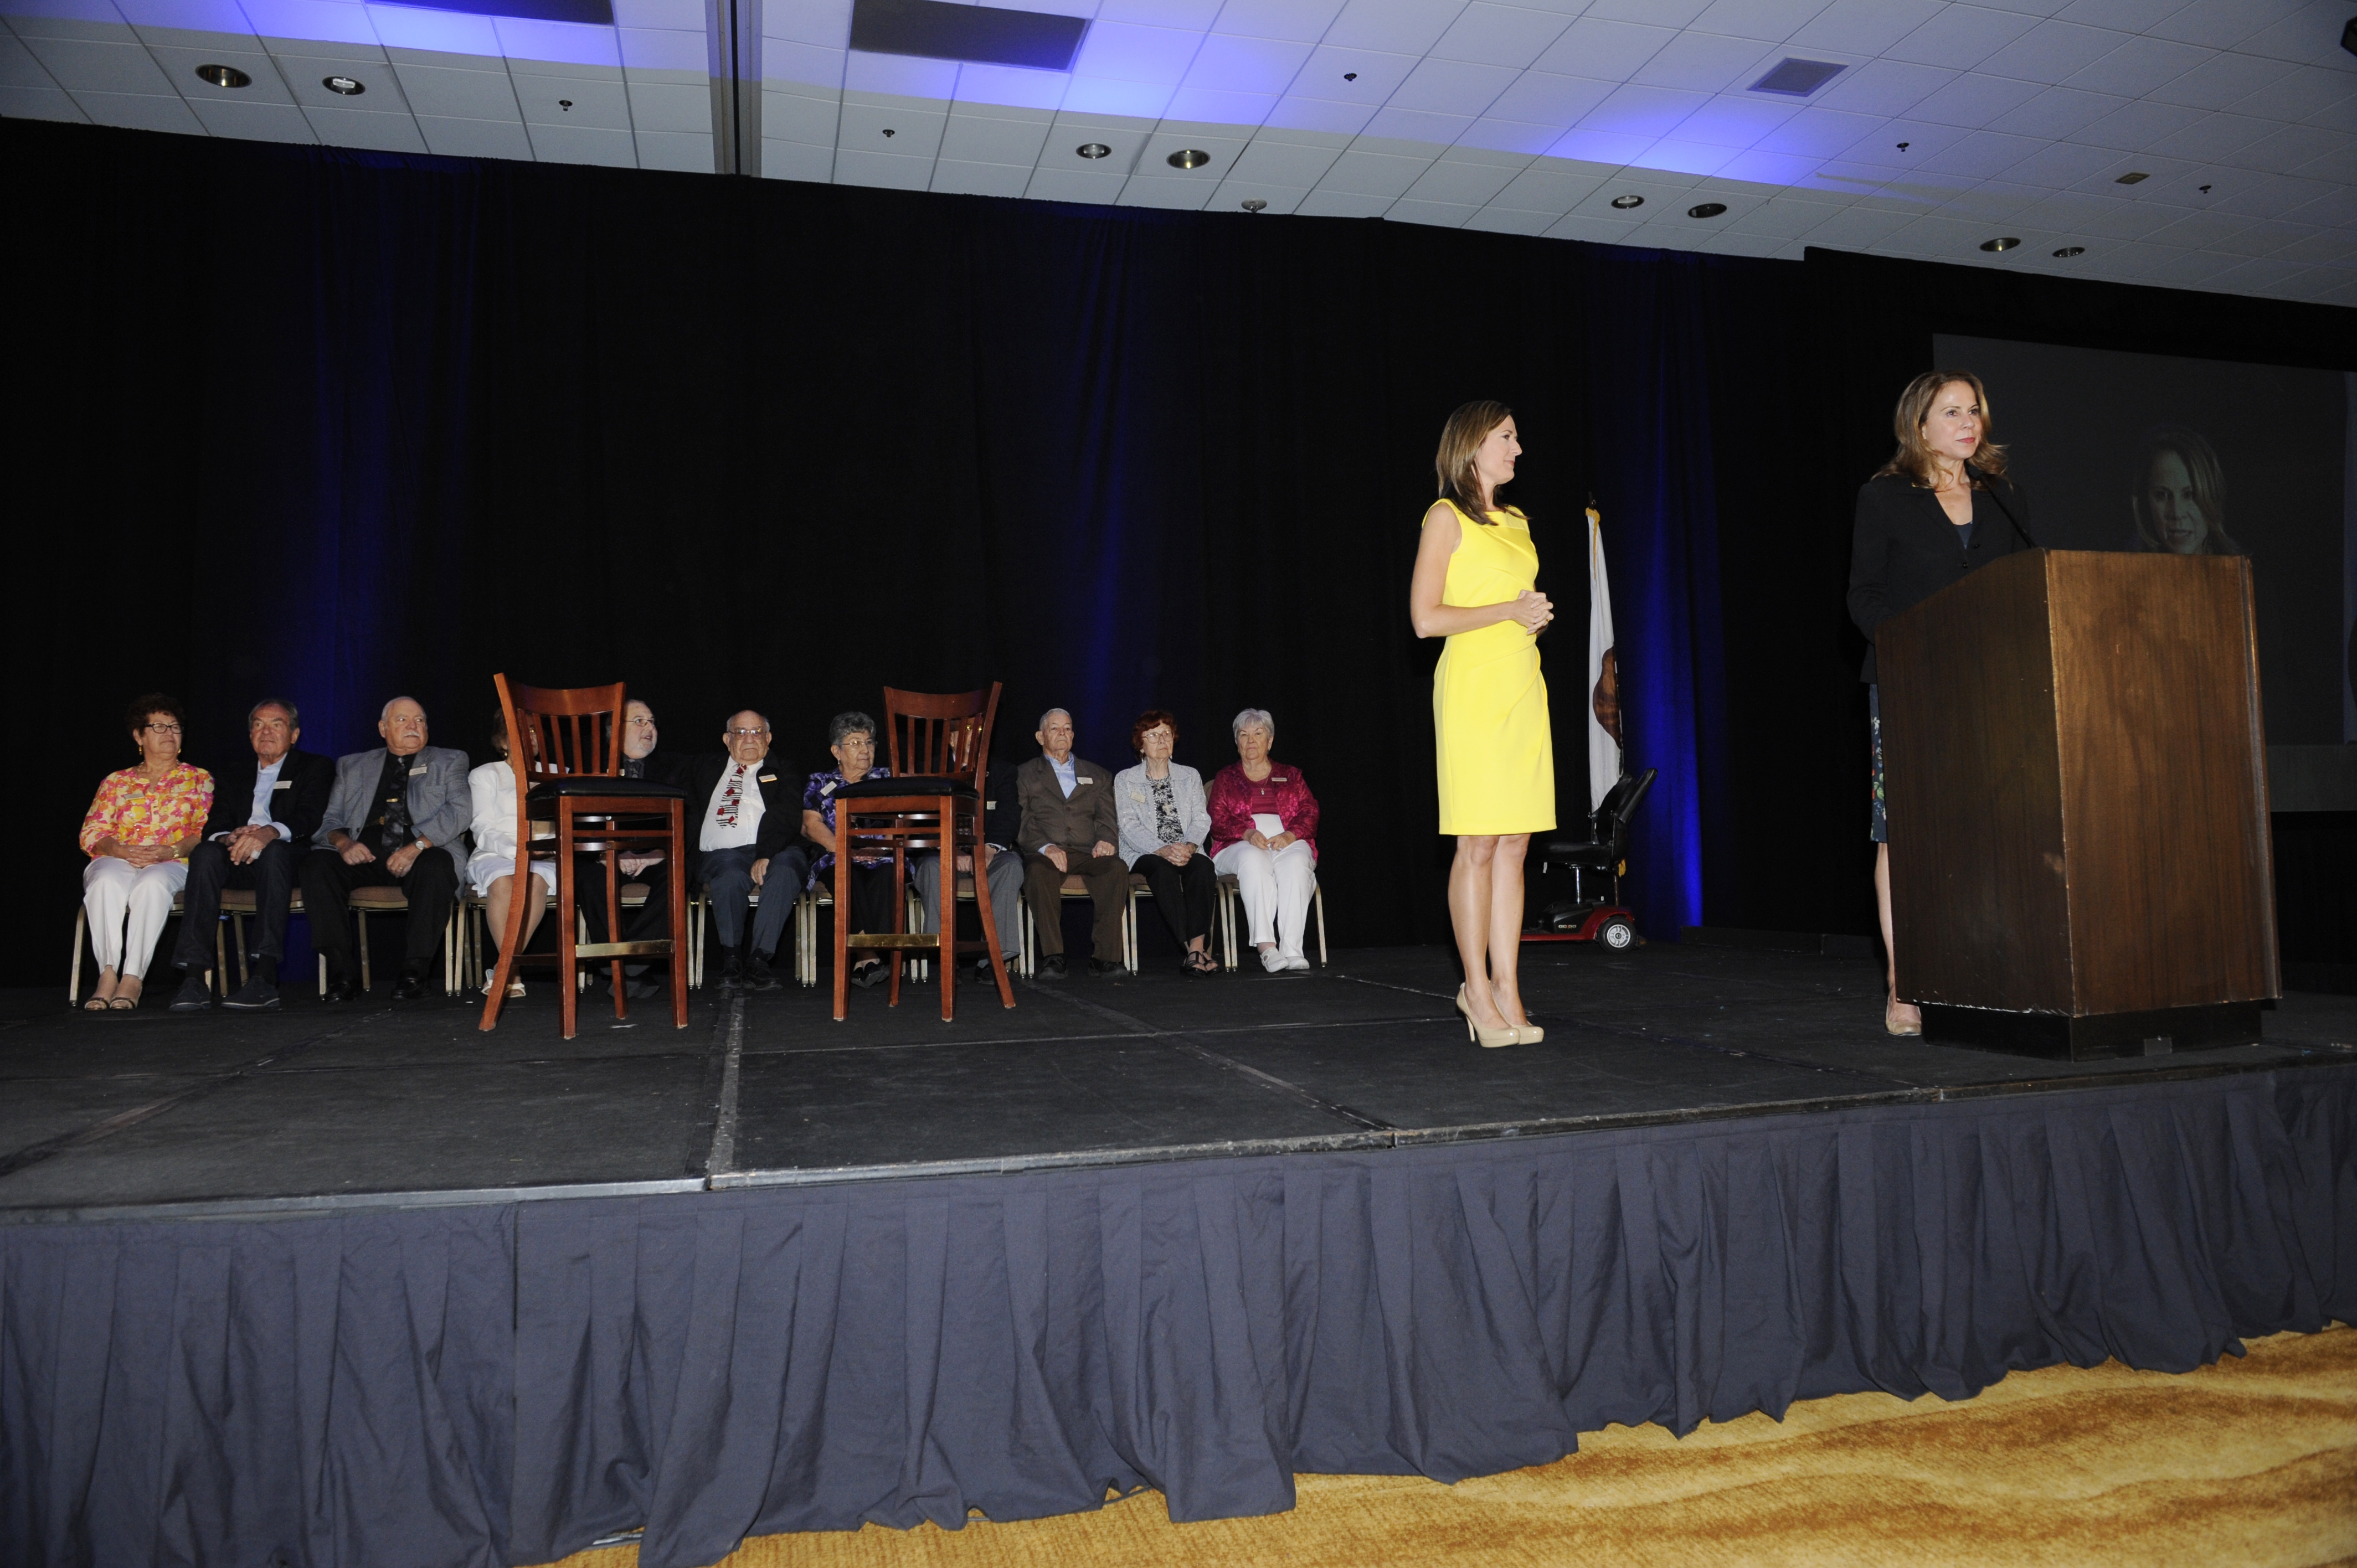 Brooke and Jan Harnik_honorees on stage